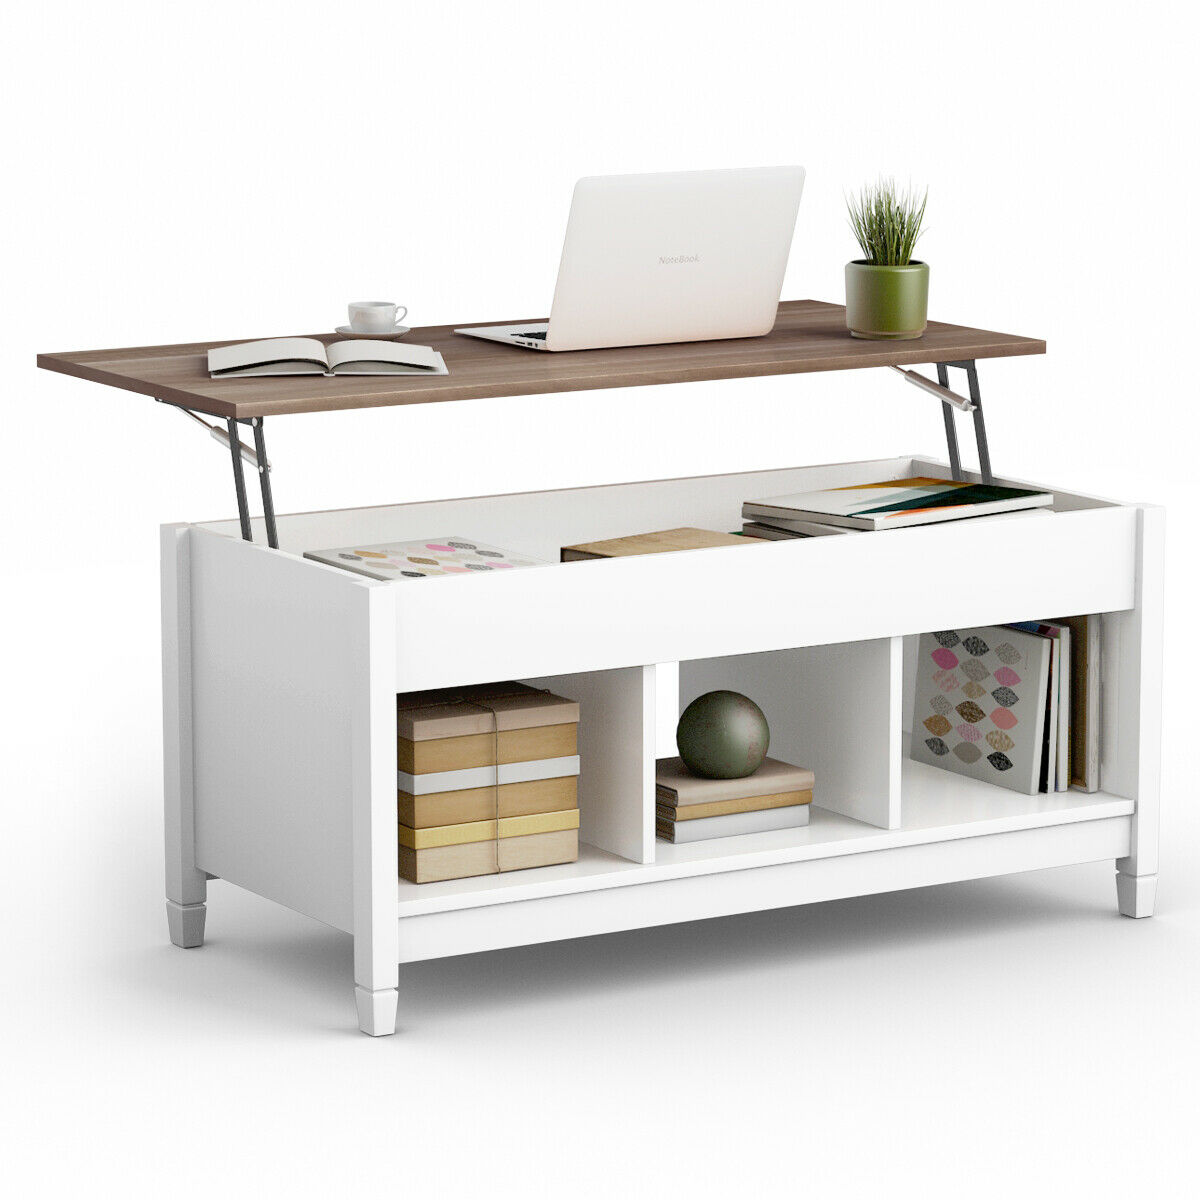 - Lift Top Coffee Table W/ Hidden Compartment And Storage Shelves